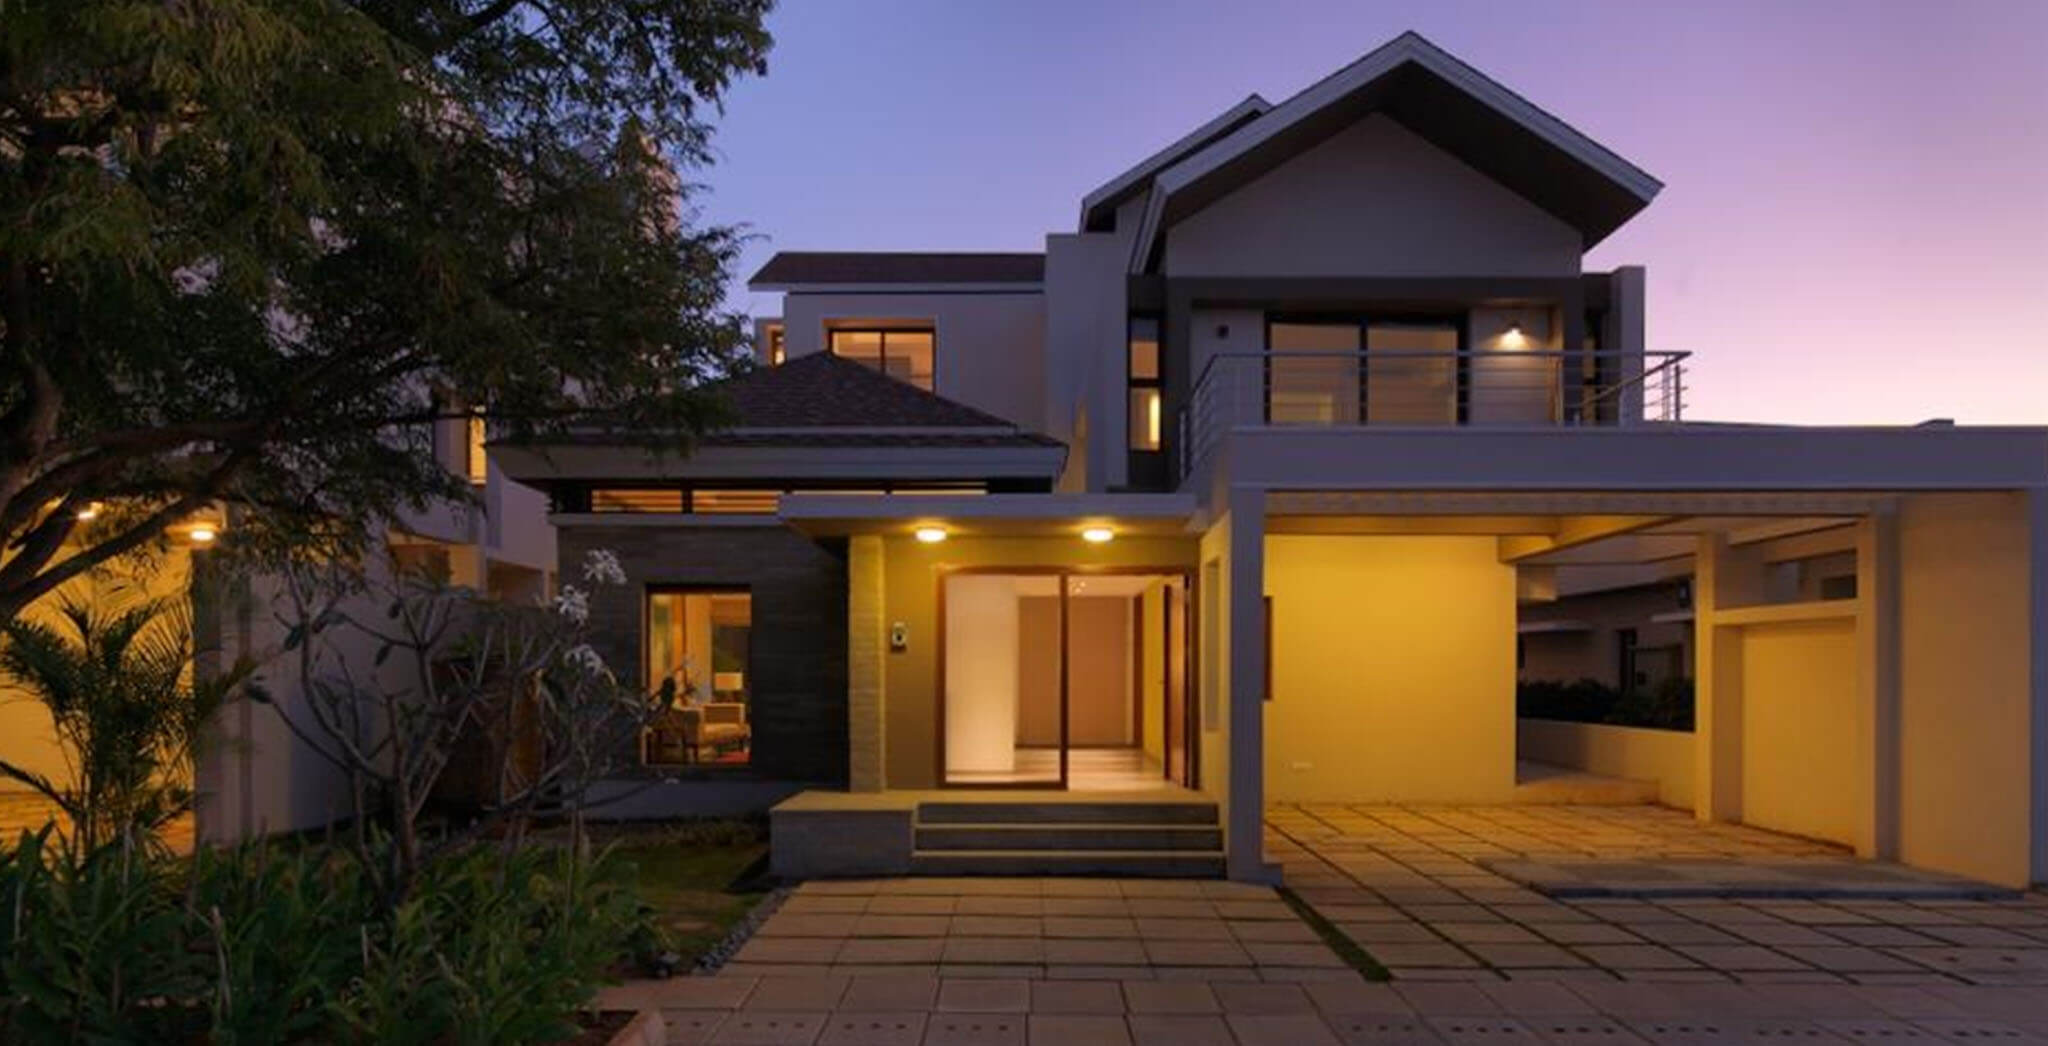 Villas in North Bangalore